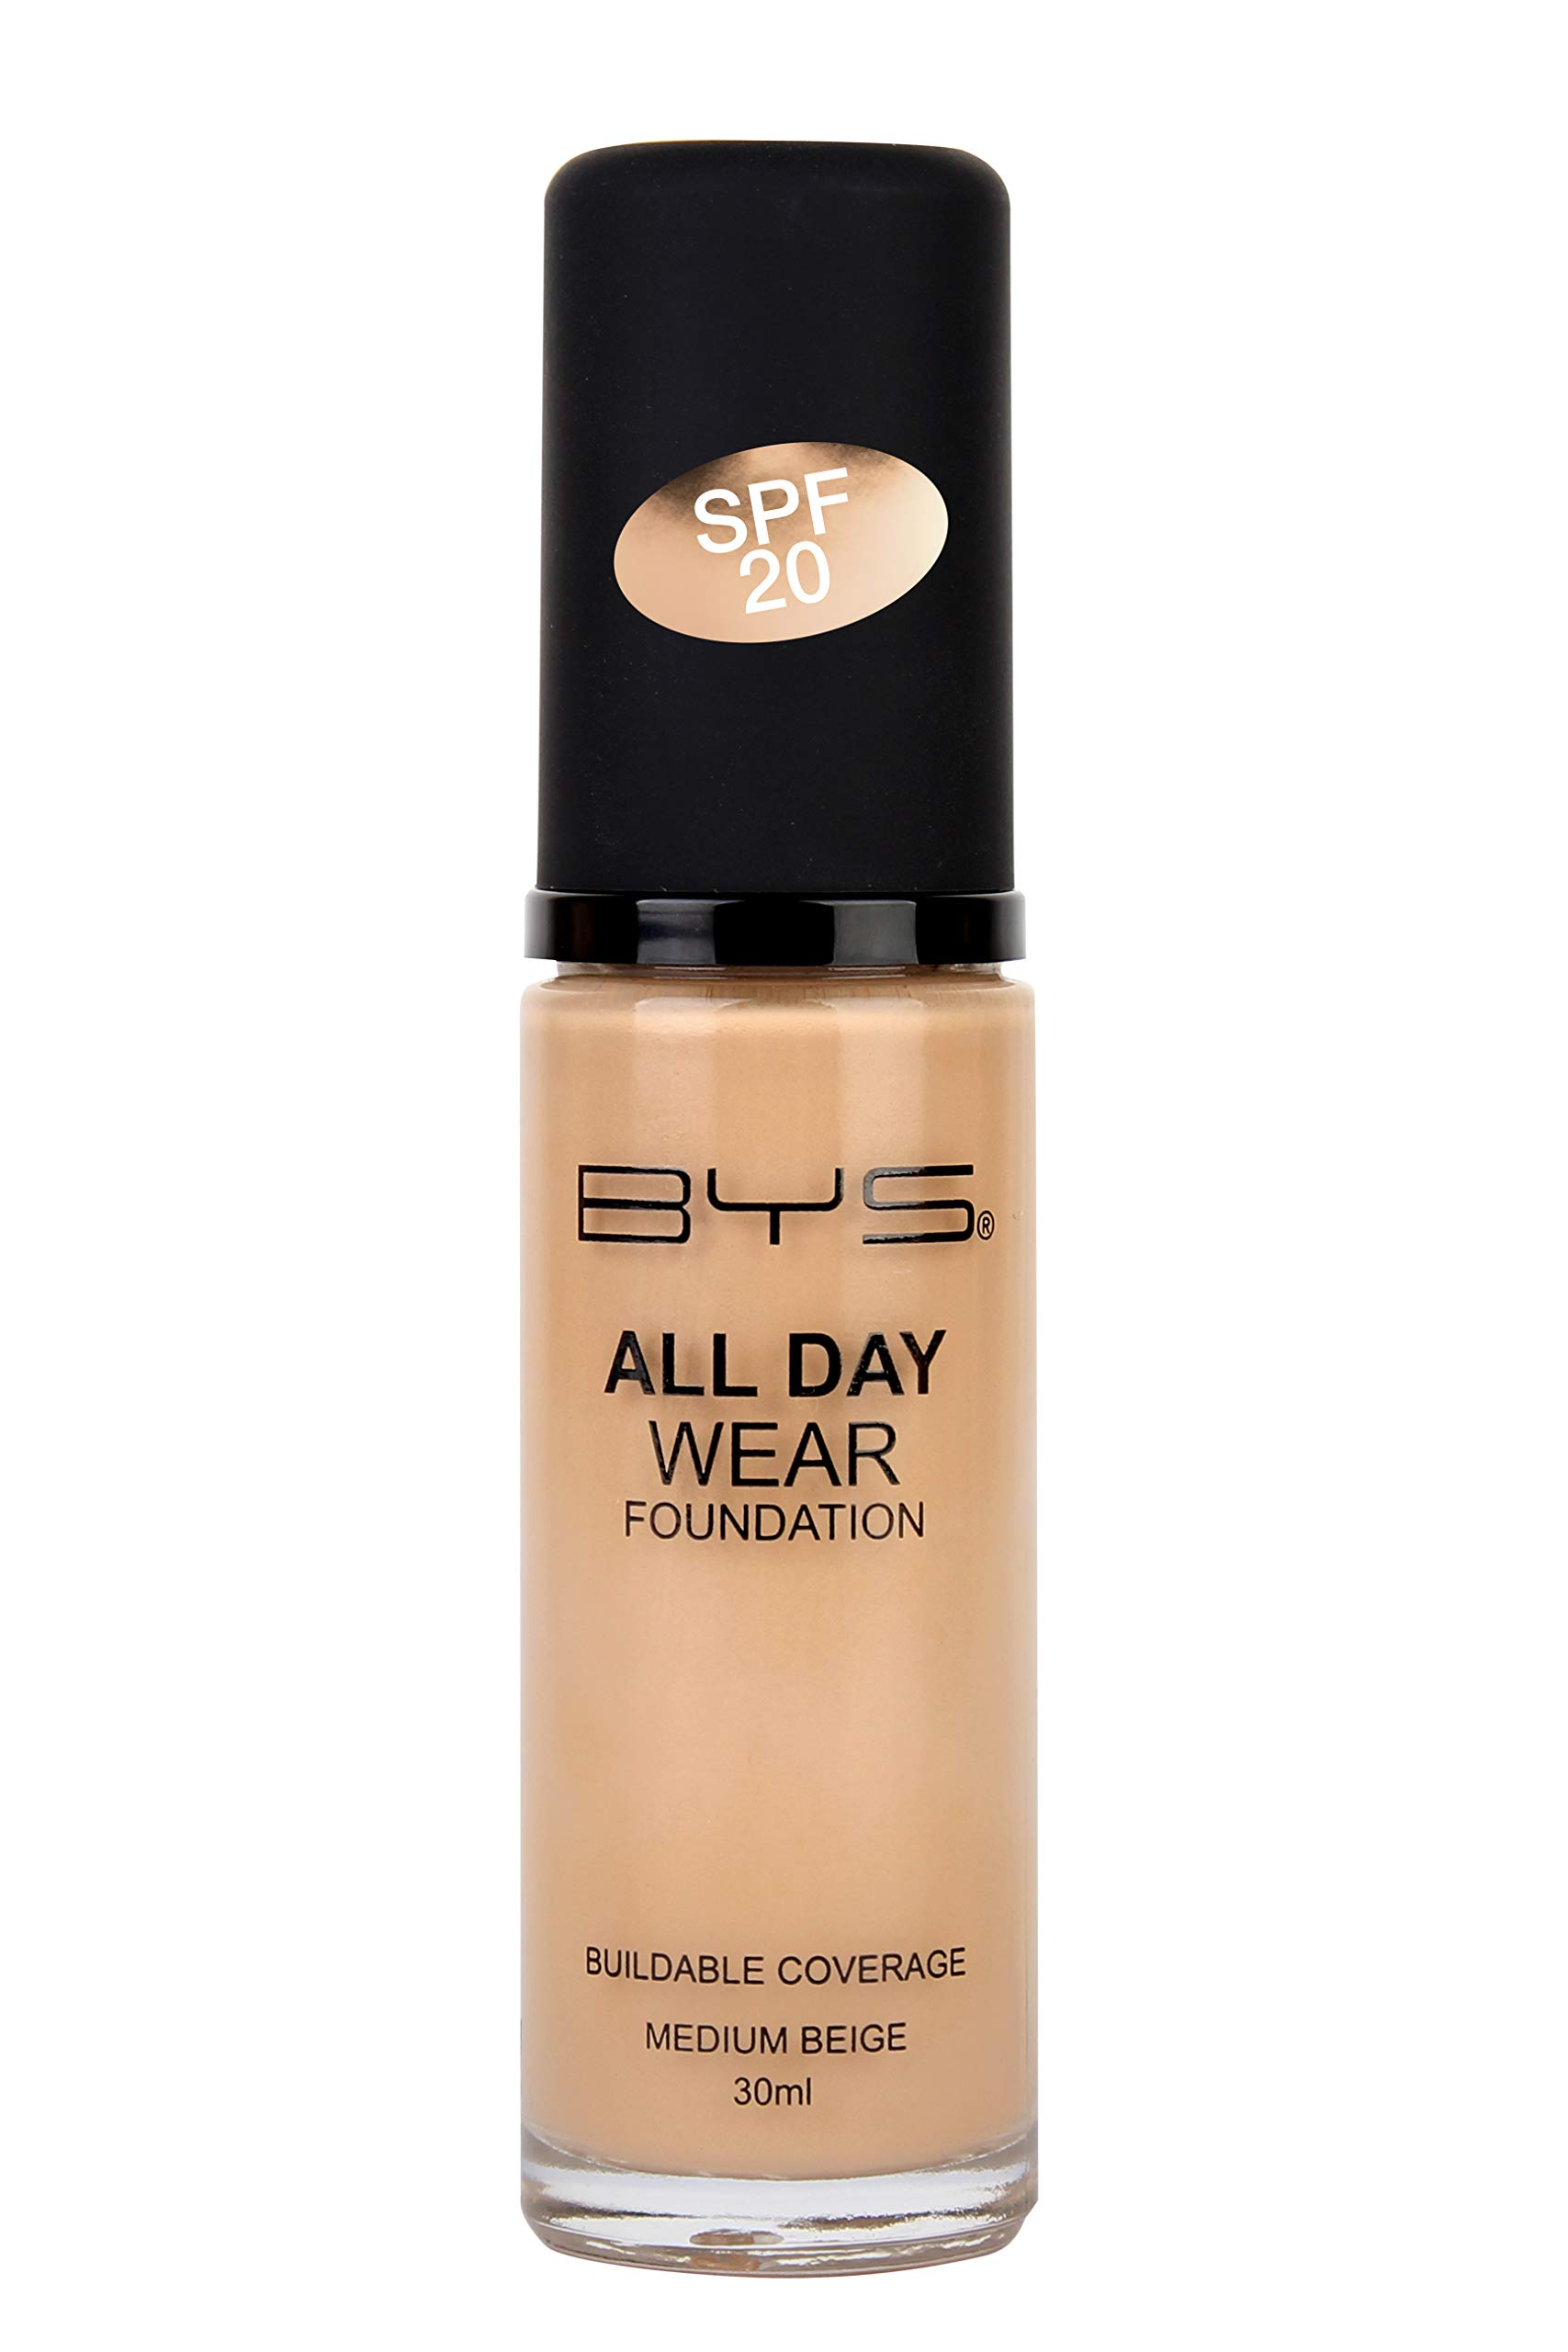 BYS All Day Wear Liquid Foundation Medium Beige - flawless base lasts all day no cake or flake buildable coverage Argan Oil antioxidant Vitamin E Peptides Vitamin C Hyaluronic Acid